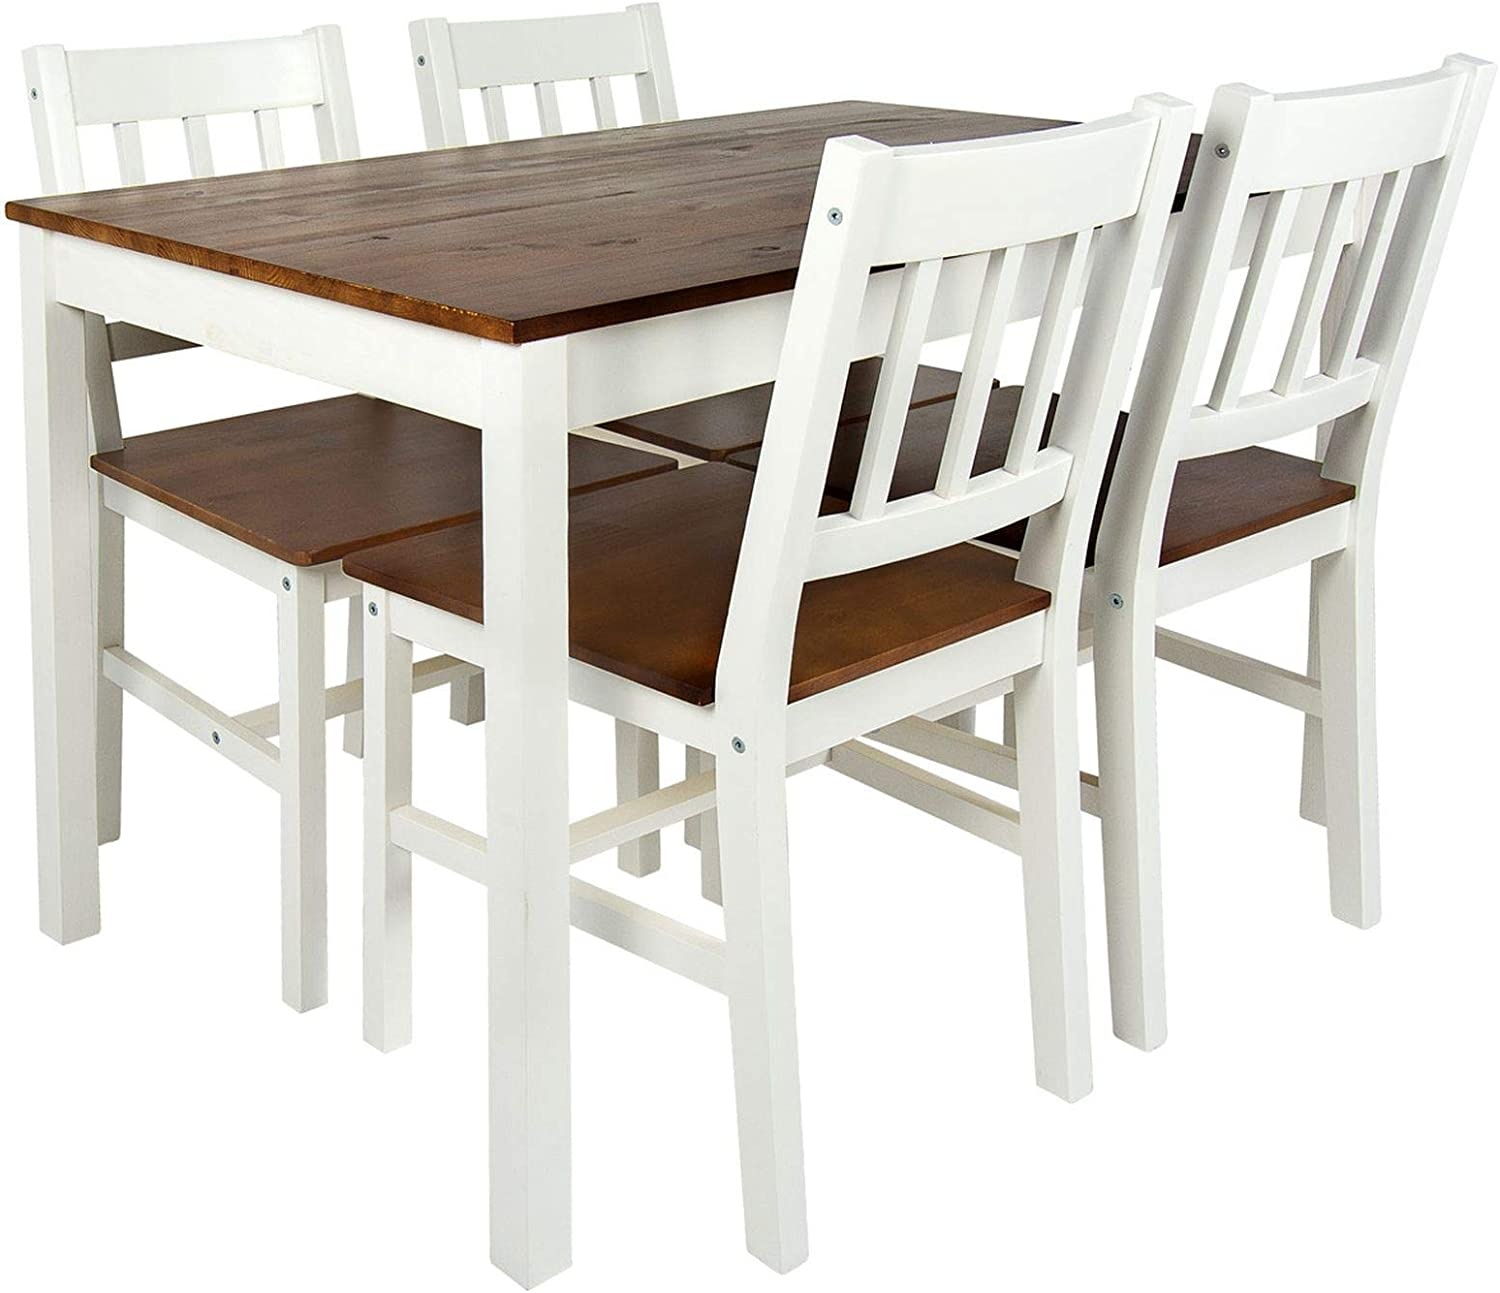 Merkell Leomark Beautiful Dining Set   White Walnut   Table and 9 Chairs,  Pine Dining Table, Natural Wood Dining Room Set for Kitchen, Complete  Wooden ...